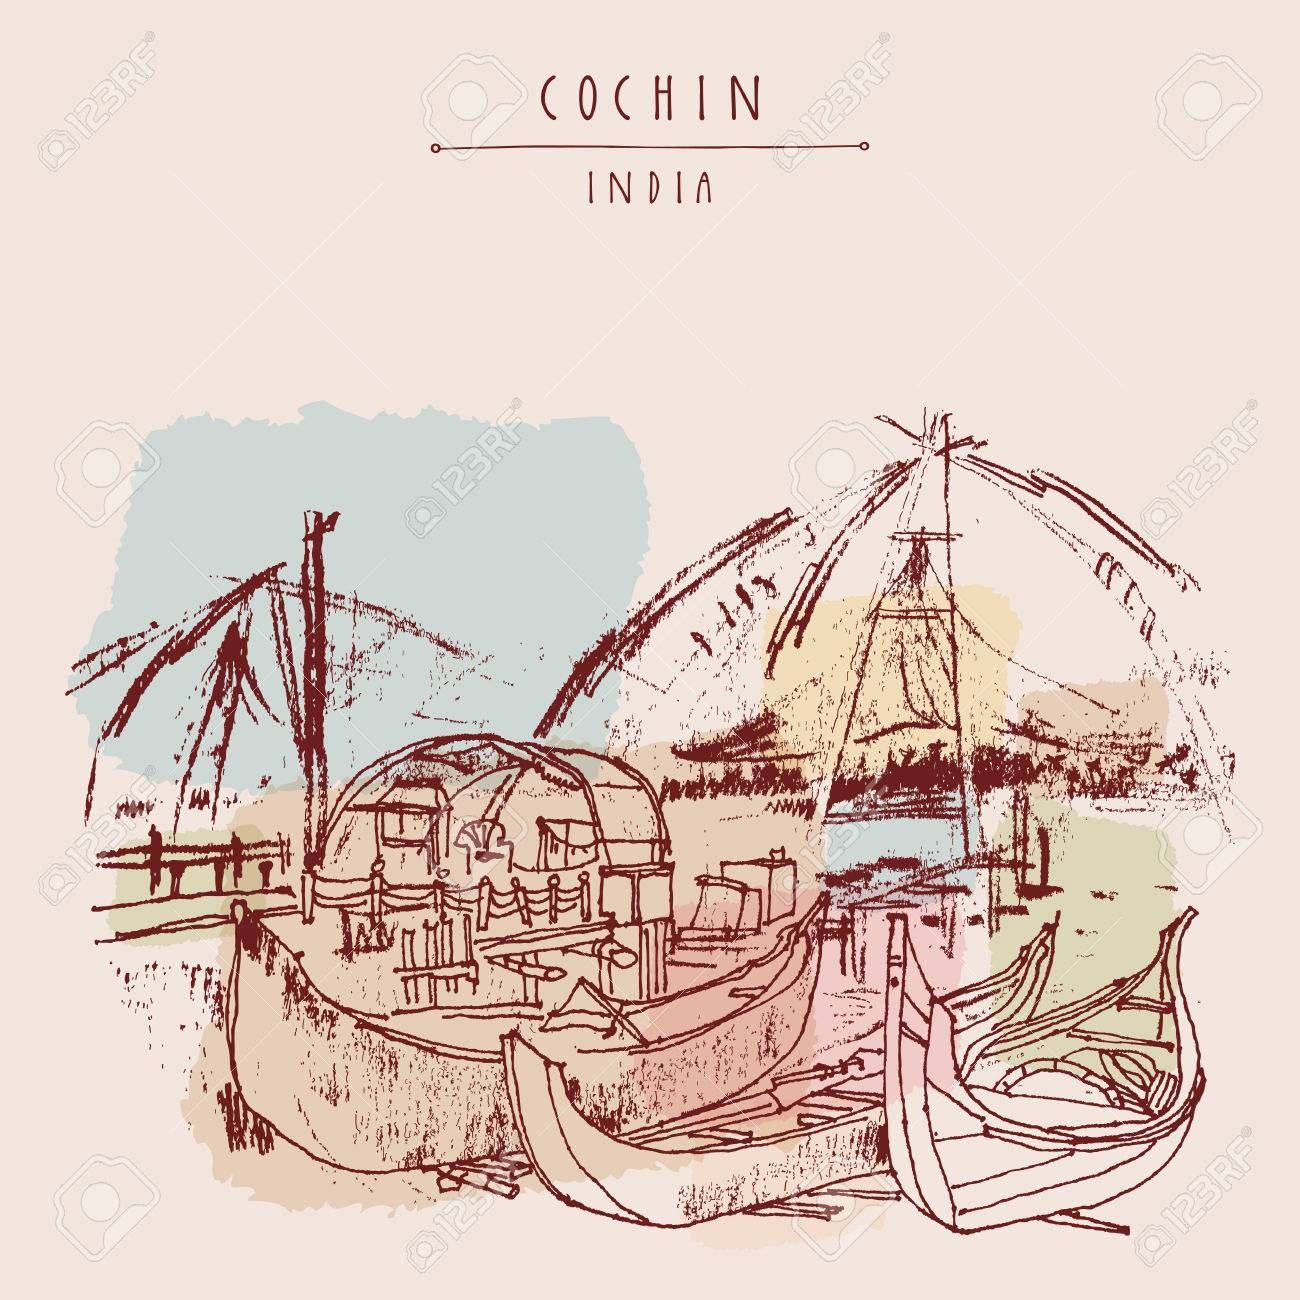 Wooden boats and Chinese traditional fishing nets in Cochin, Kerala, India. Vintage hand drawn postcard - 58715412